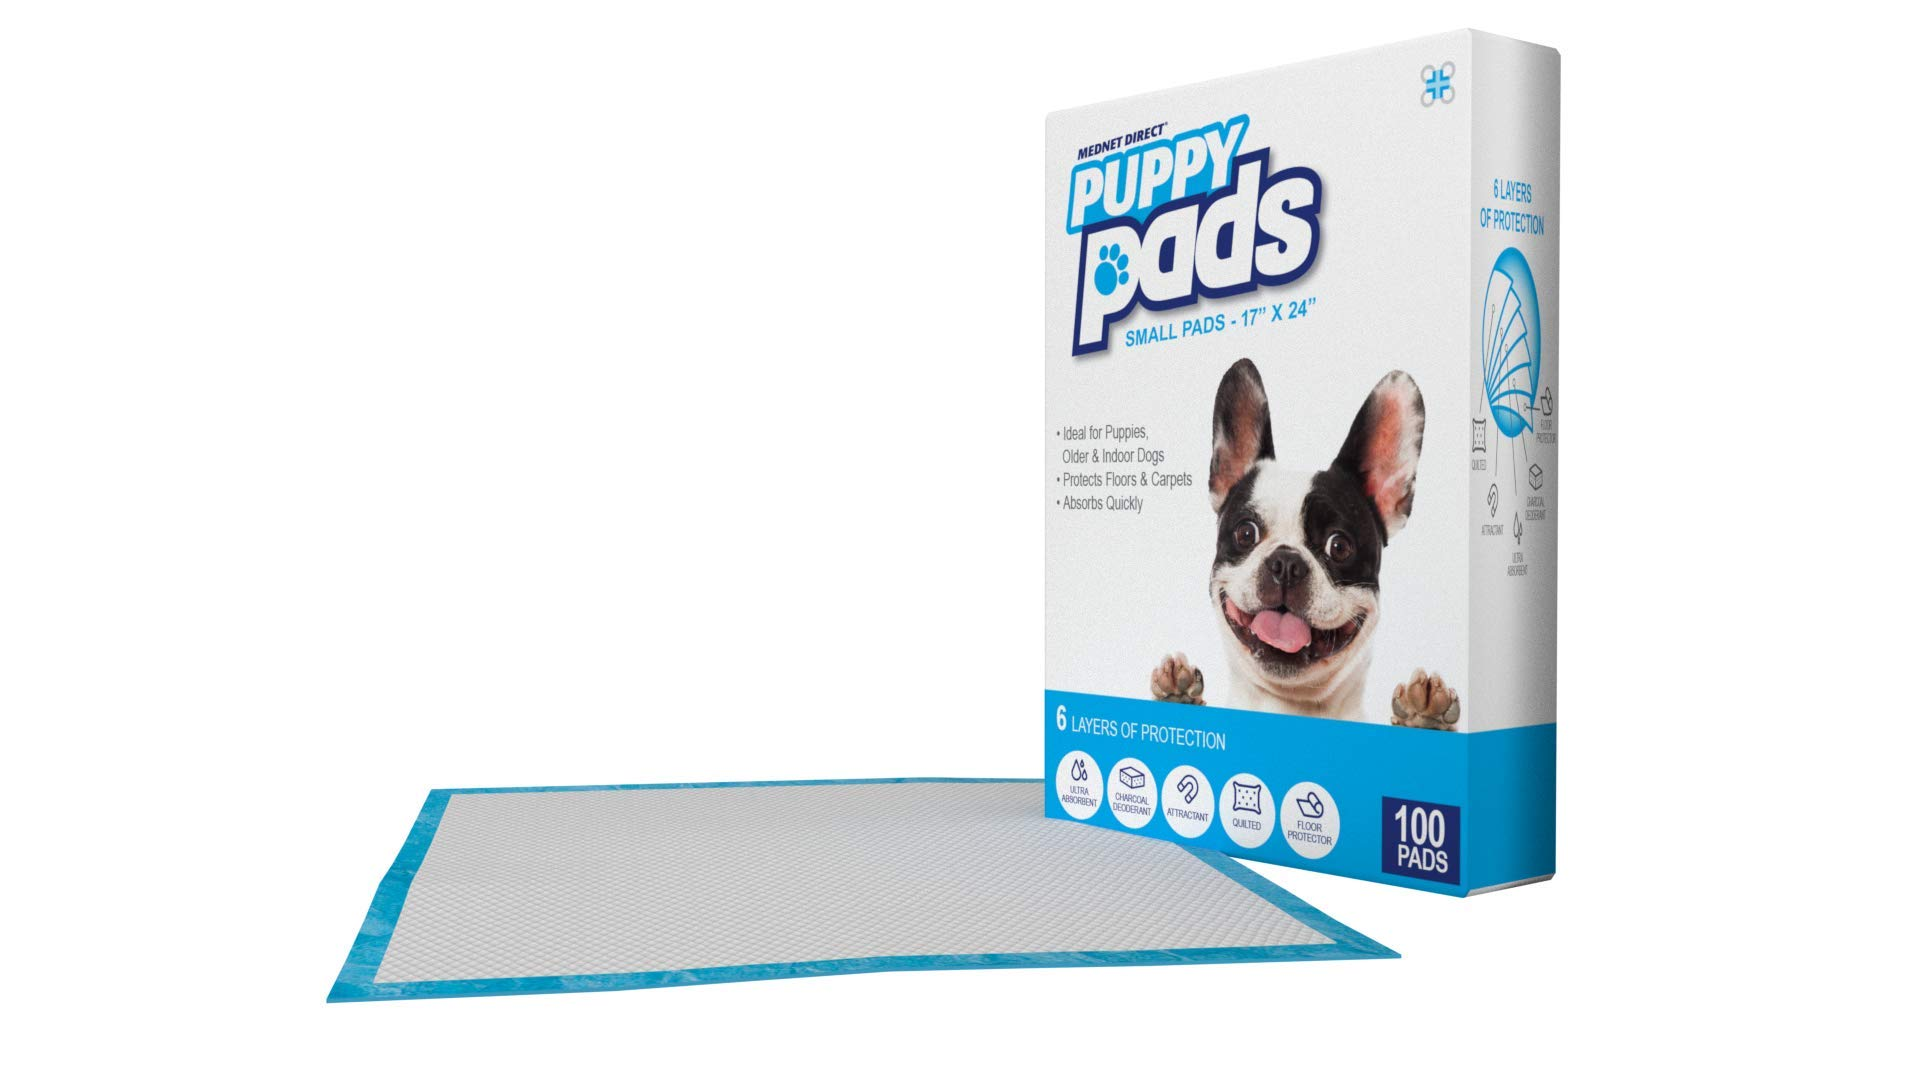 Mednet Direct 6 Layer Dog Training and Puppy Pads for Pets With Deodorant and Attractant, 17 x 24, 100 Count